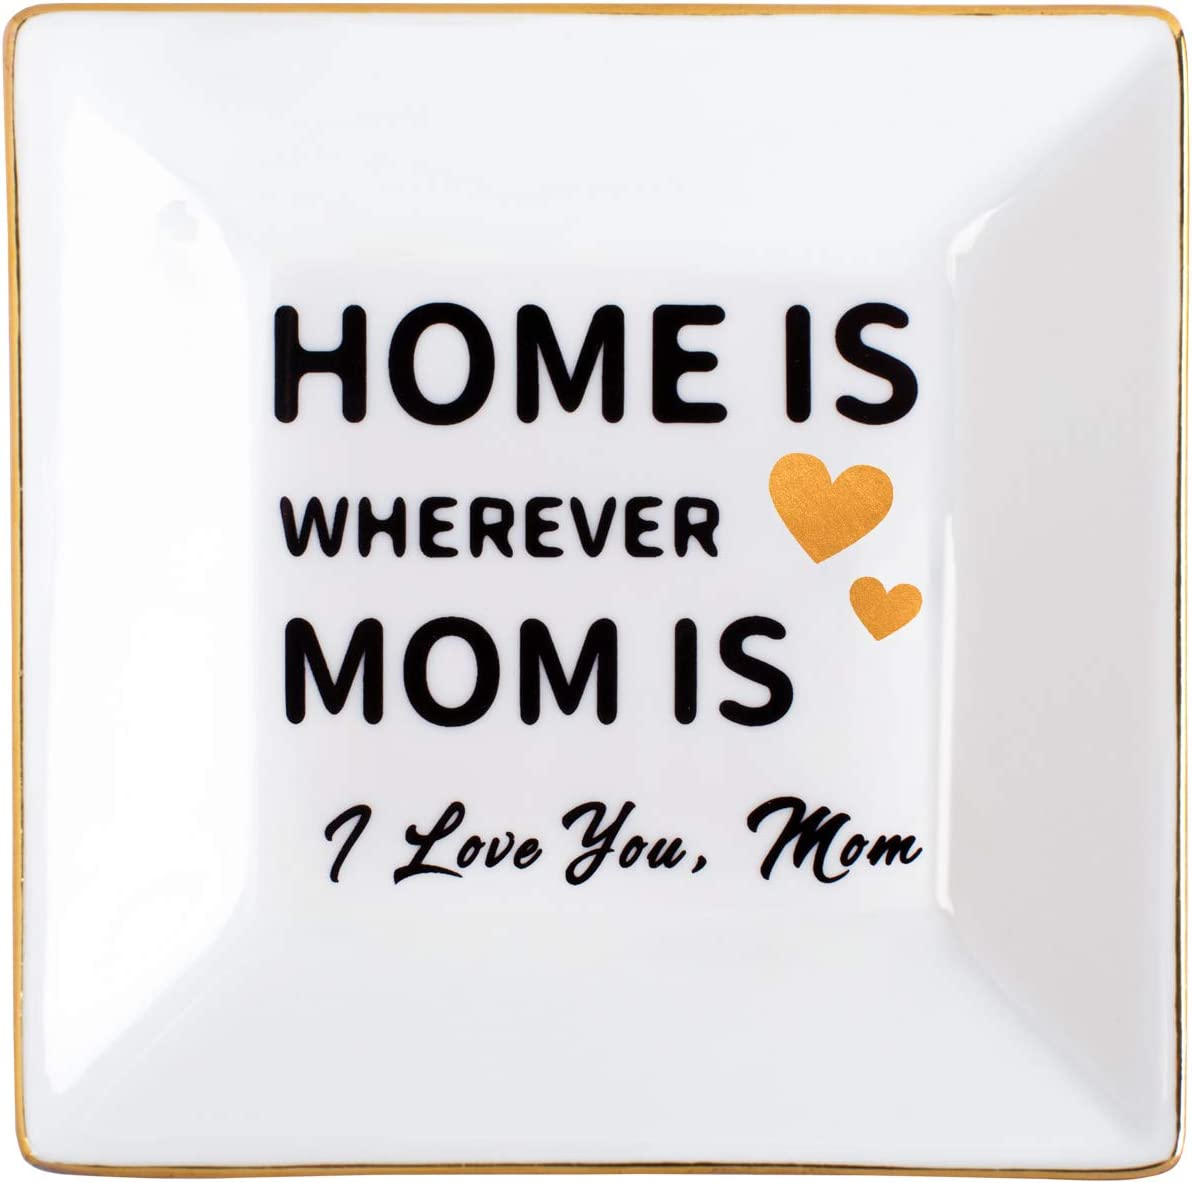 Kaidouma Gifts for Mom from Daughter Son Ring Dish Ceramic Jewelry Trinket Tray Mother's Day Birthday Christmas Gift for Mother - Home is Wherever Mom is - I Love You Mom